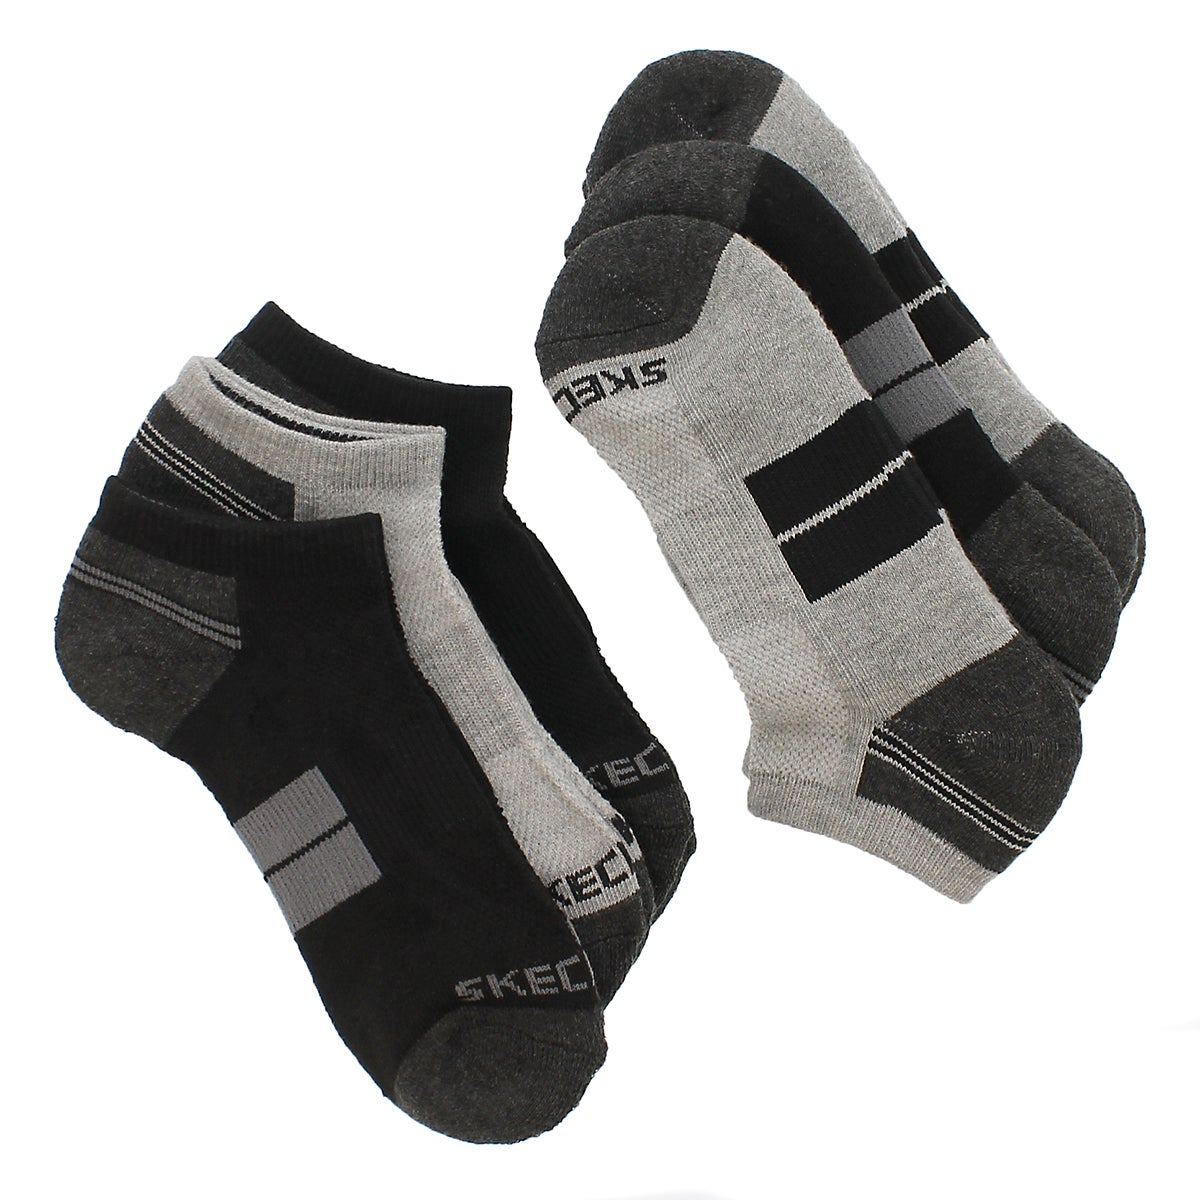 Bys Low Cut 1/2Terry gry/blk MED sock 6p